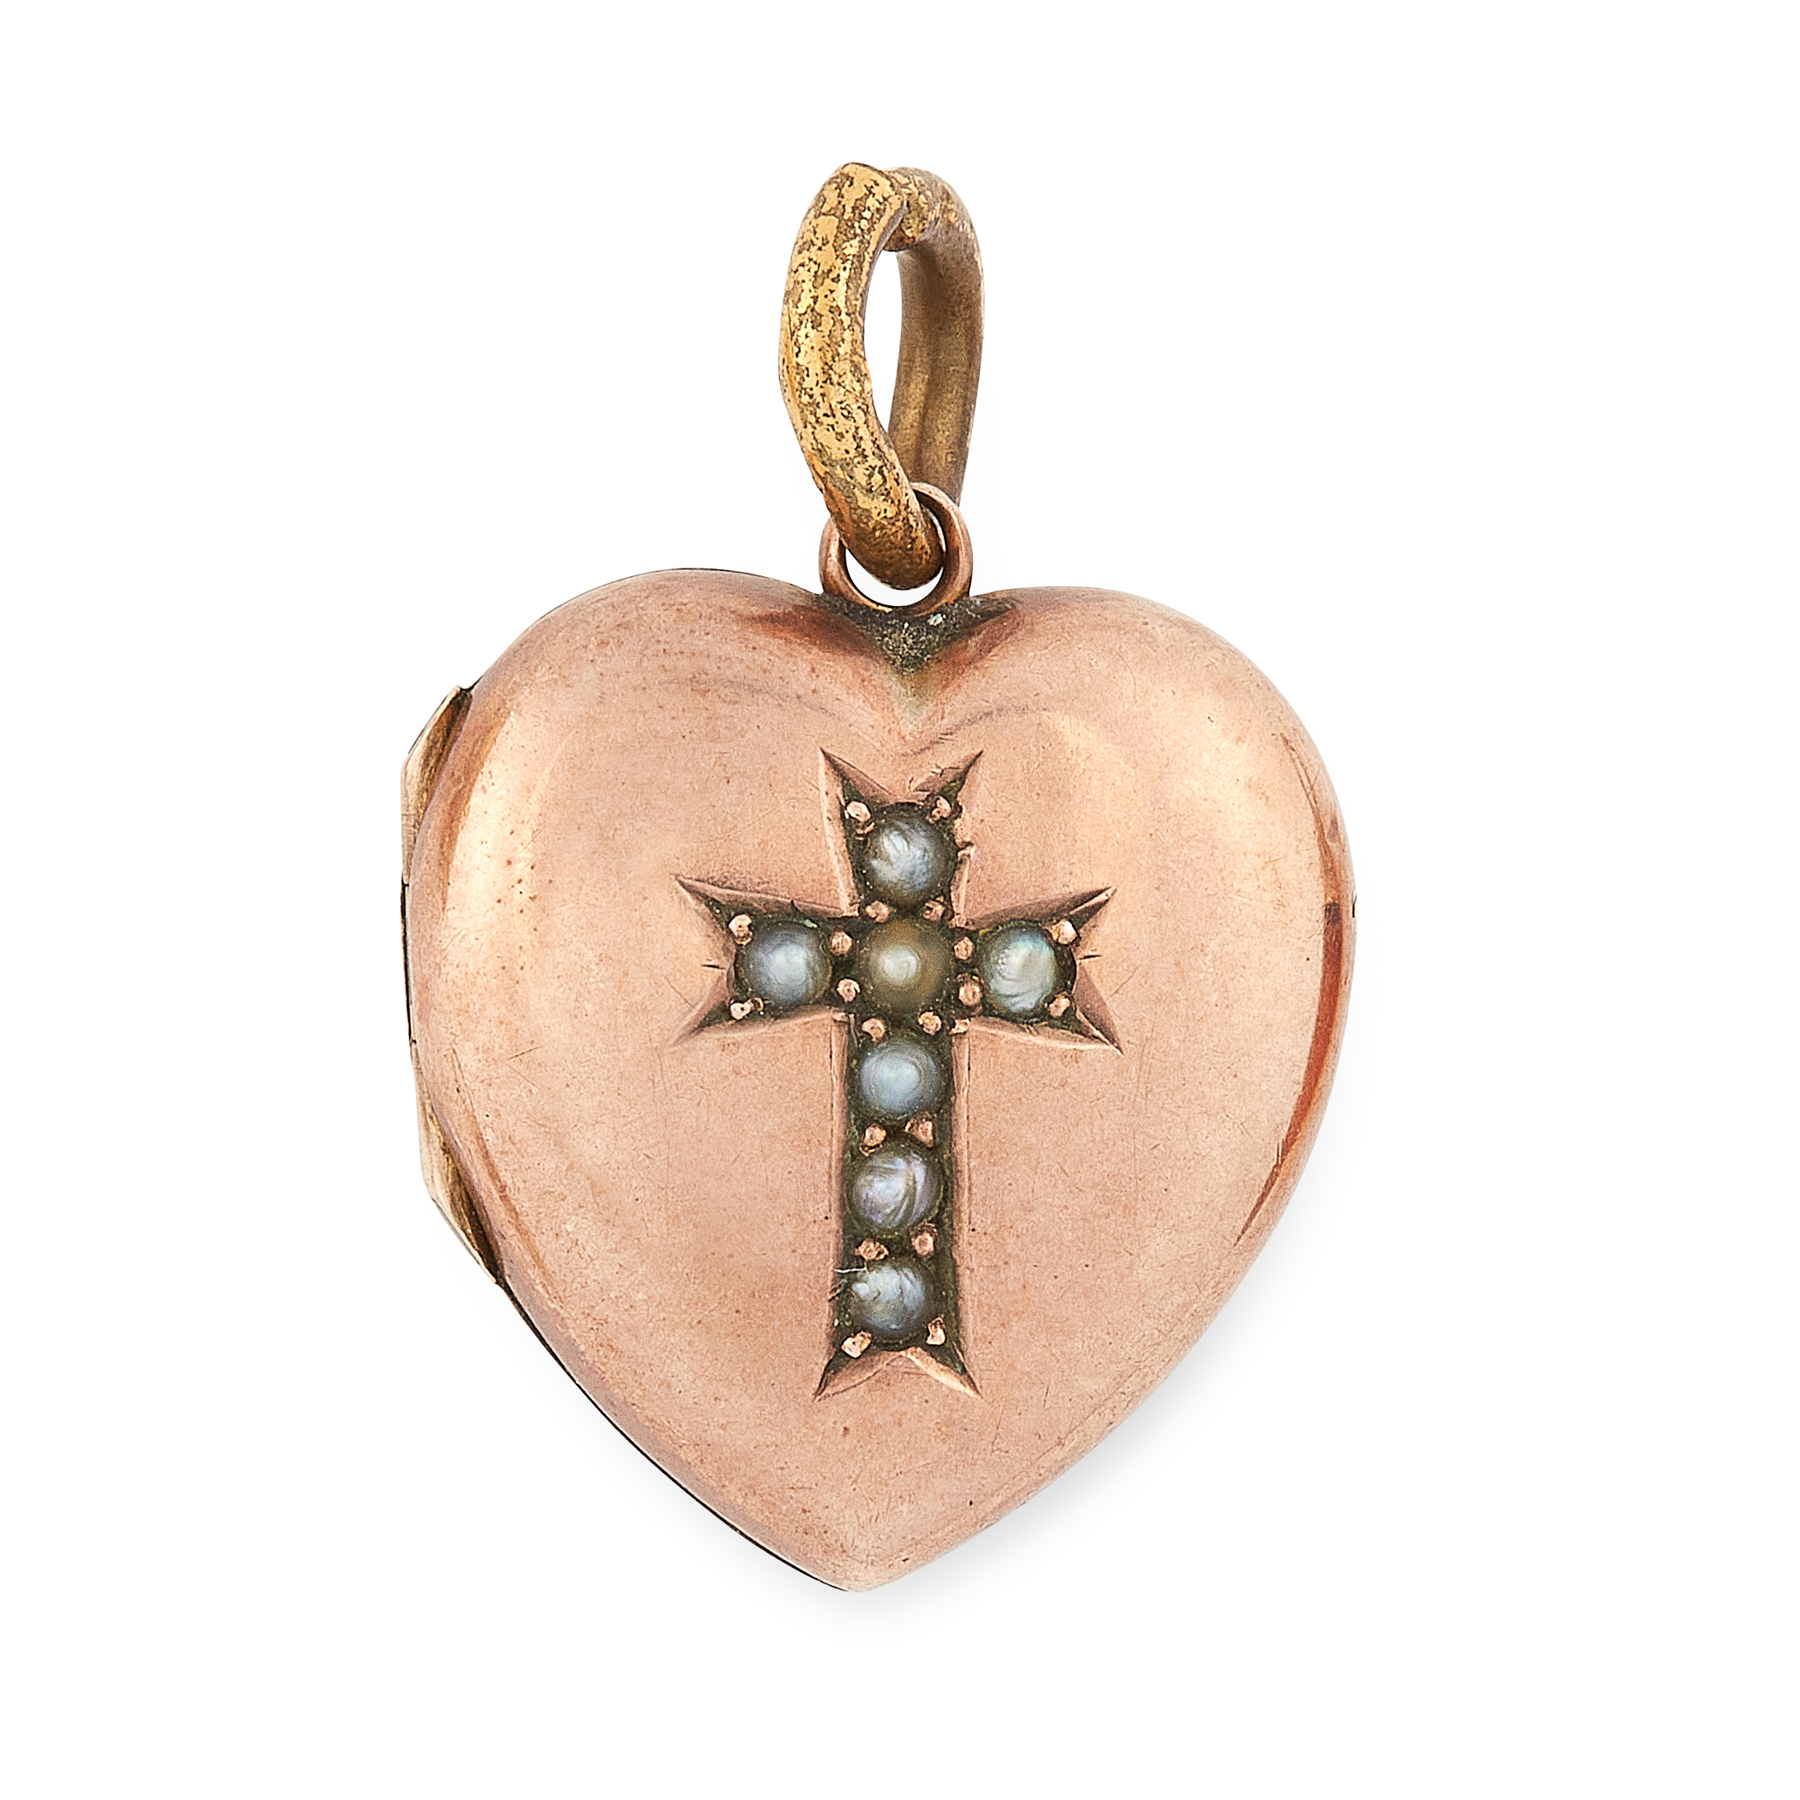 AN ANTIQUE PEARL LOCKET PENDANT in yellow gold, the hinged body in the form of a heart, with inset